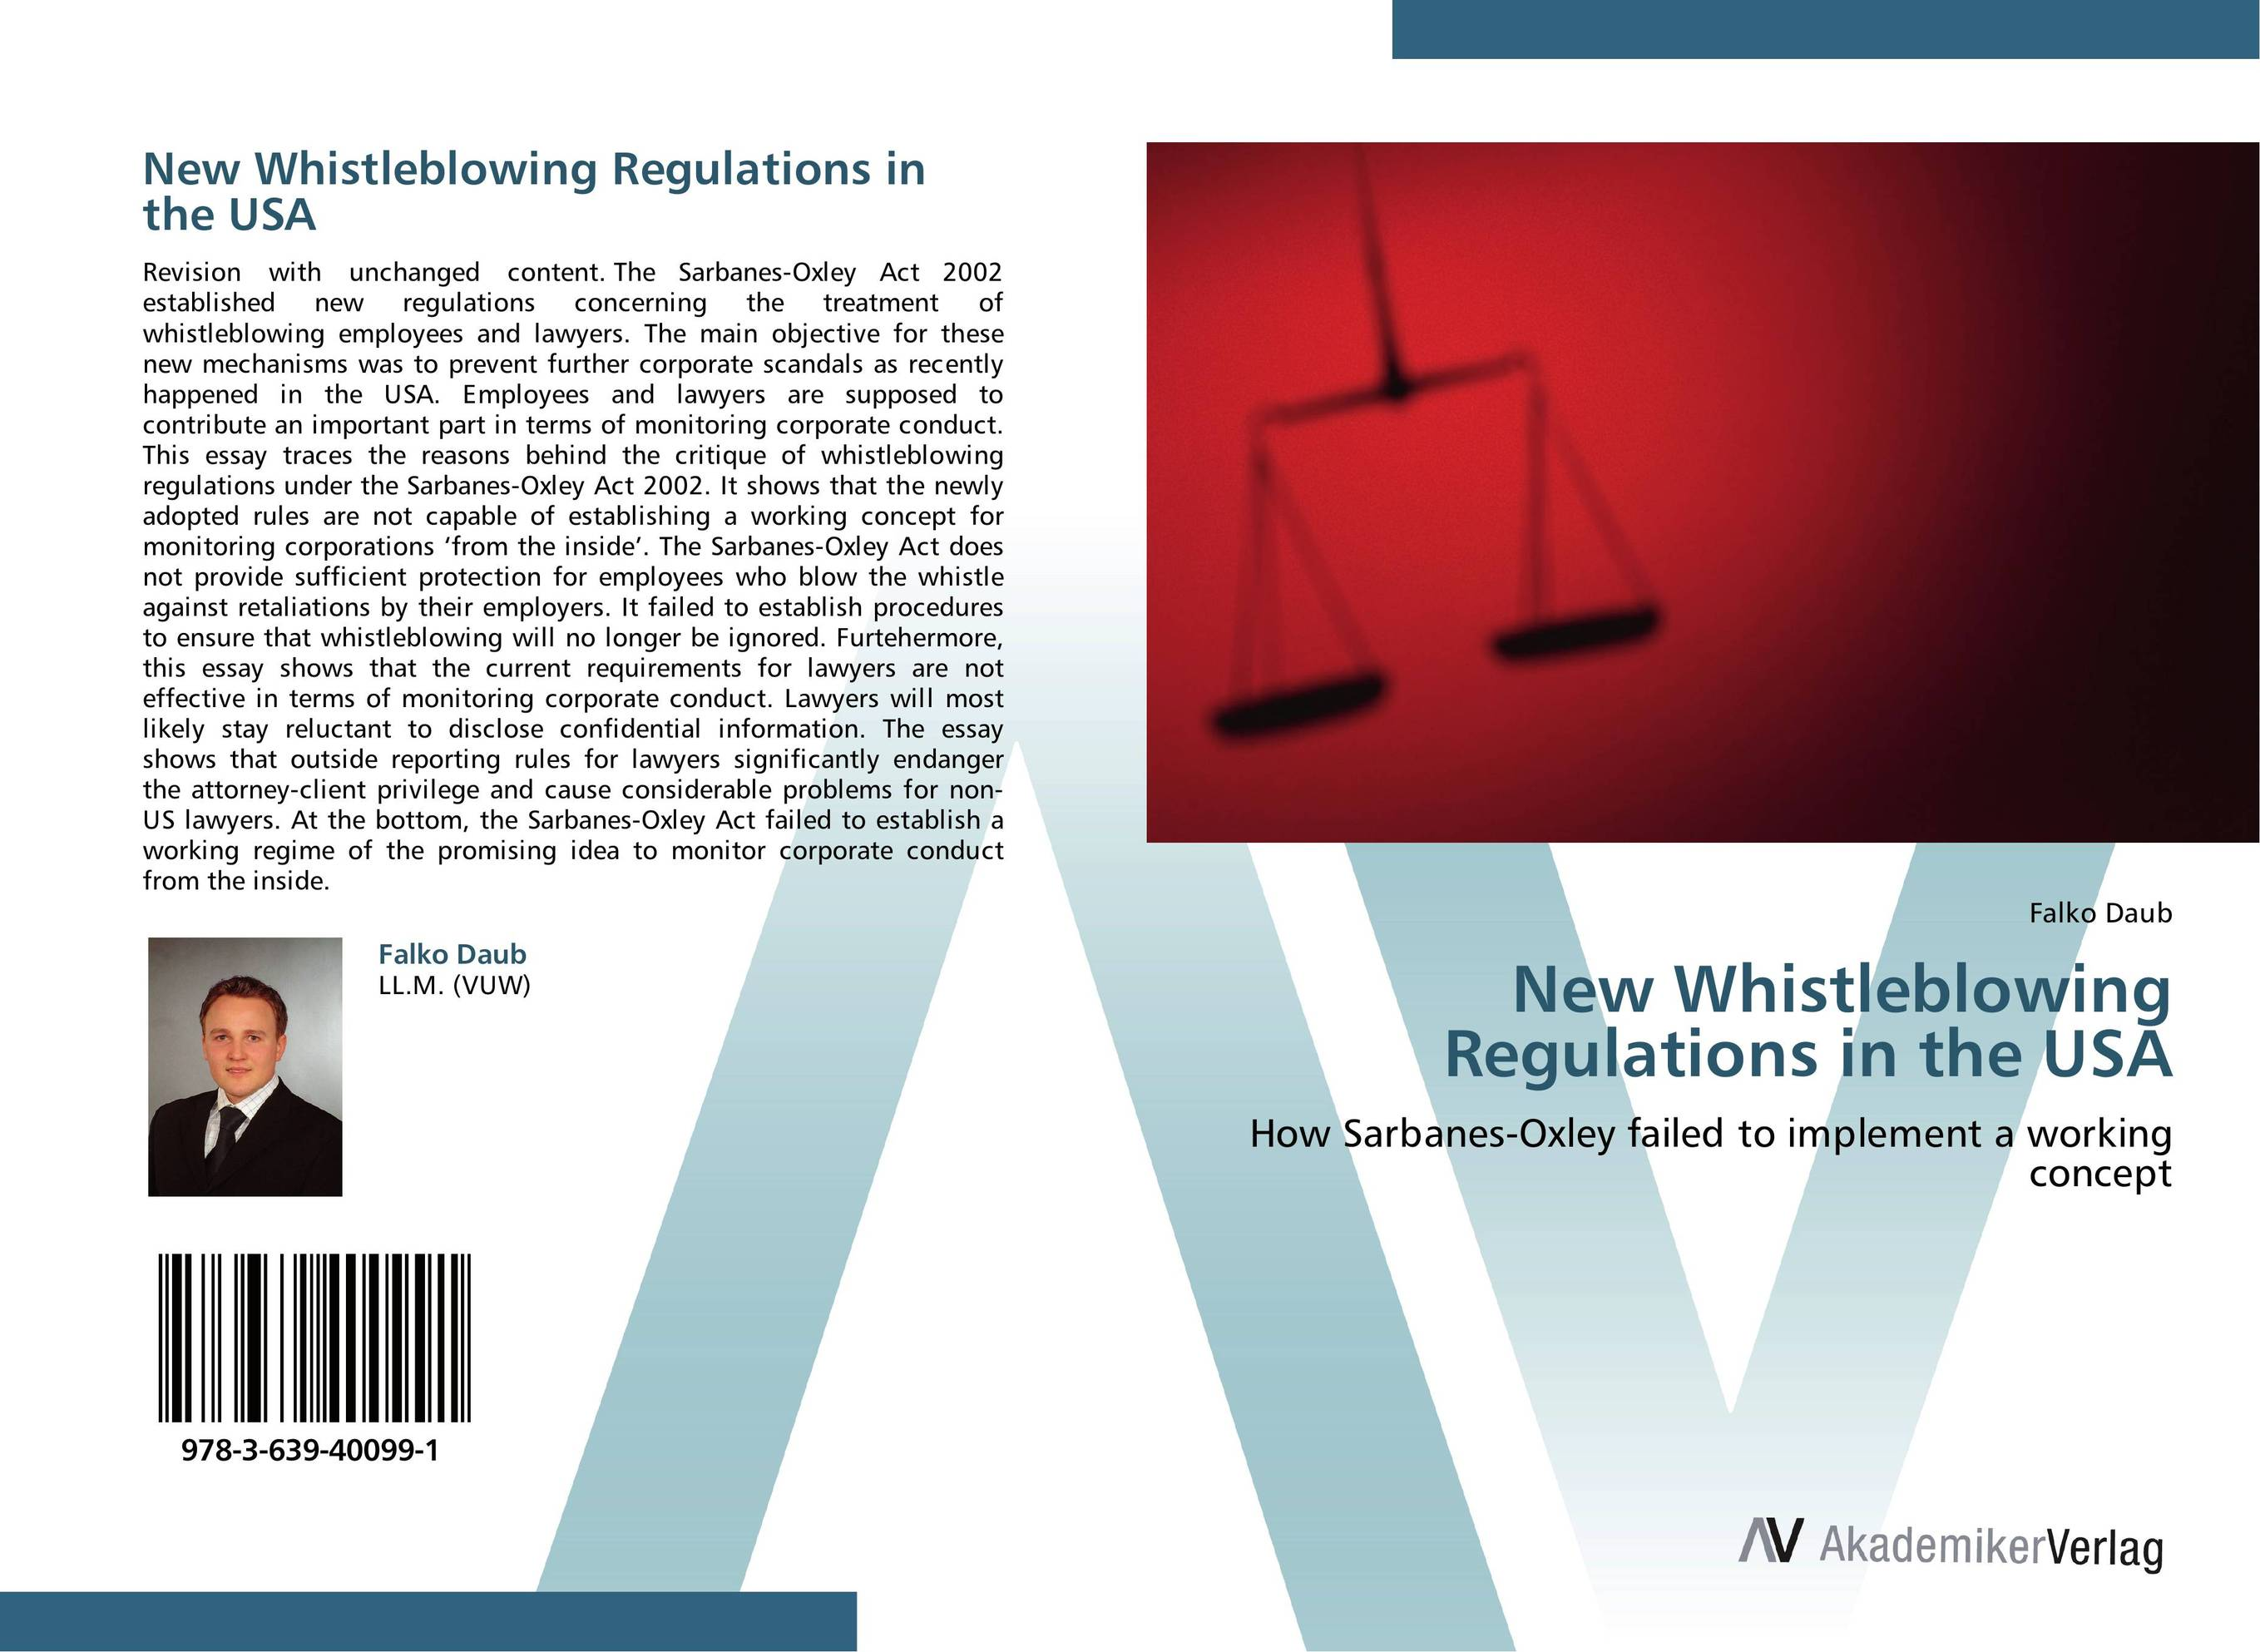 New Whistleblowing Regulations in the USA paul ali international corporate governance after sarbanes oxley